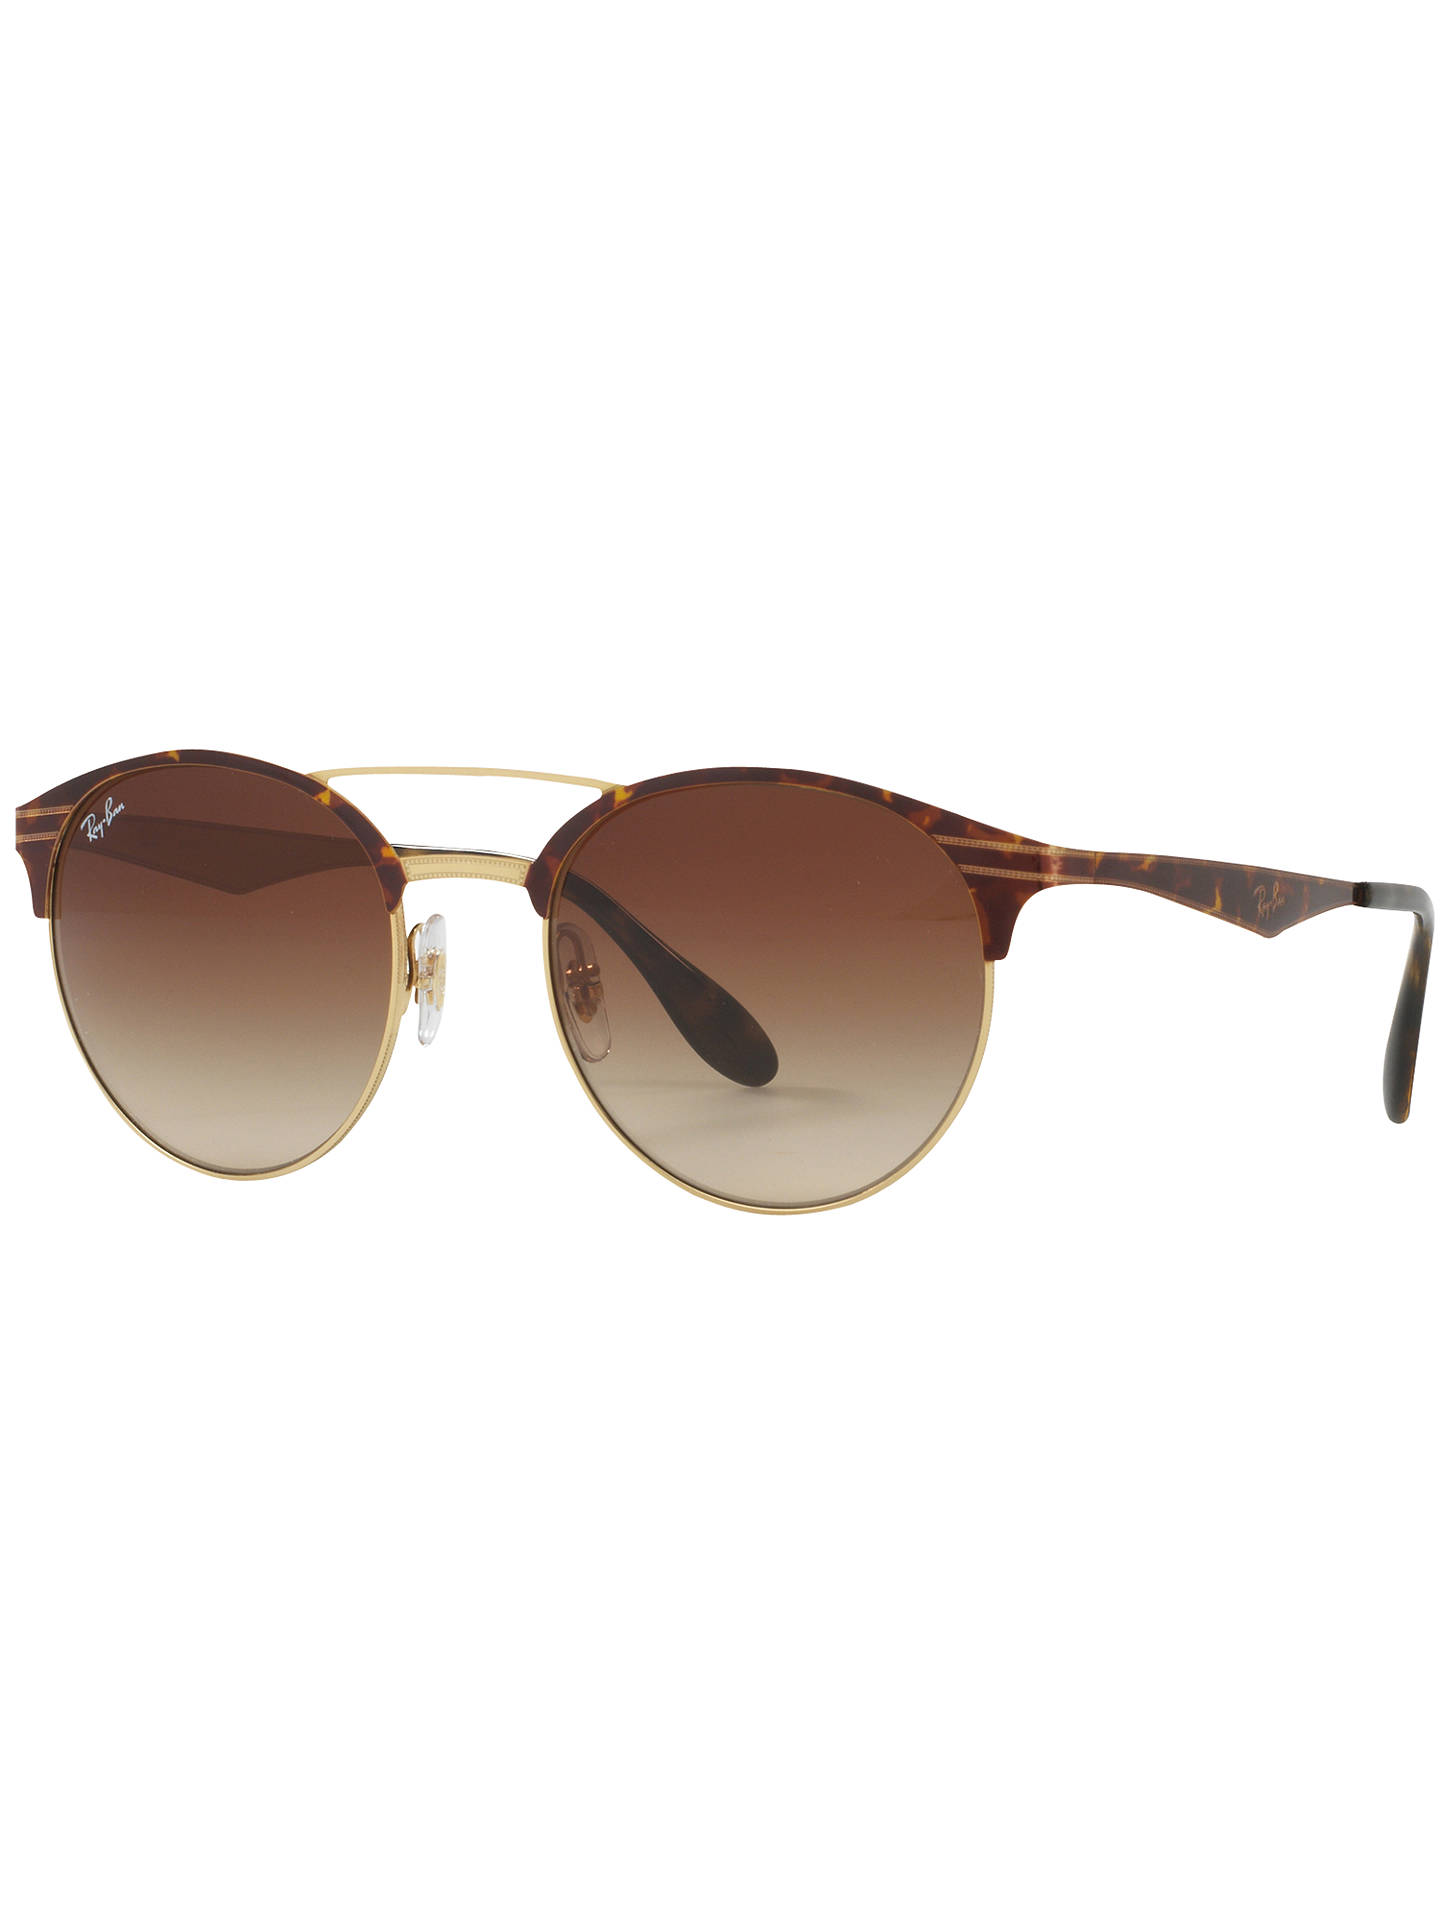 a334db48f90 Ray-Ban RB3545 Oval Sunglasses at John Lewis   Partners